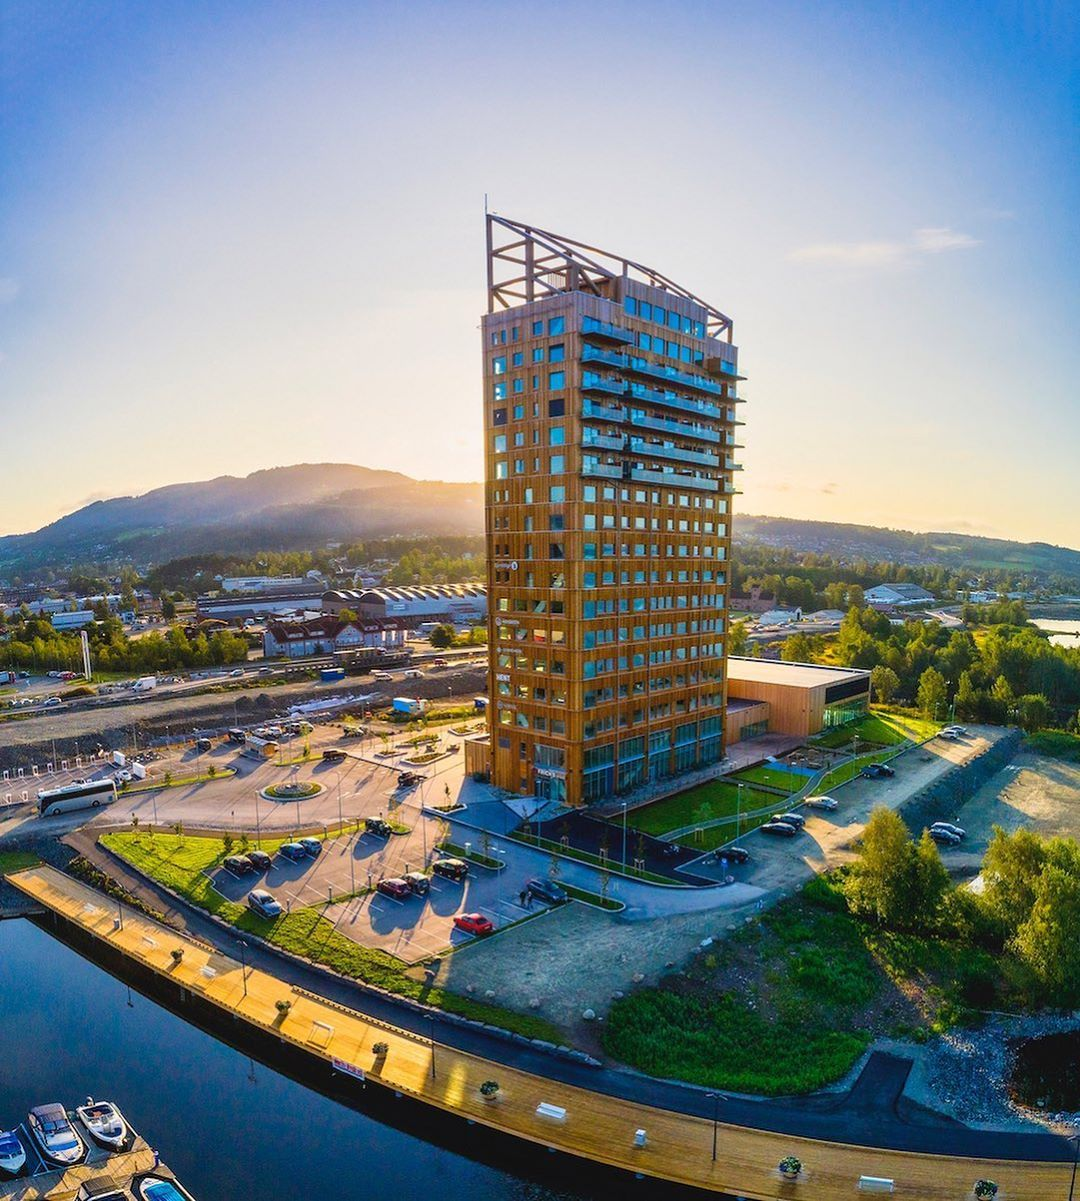 The Tallest Wooden Building In The World Meet The Mjosa Tower The Building P The Tallest Wooden Building In The World Meet The Mjosa Tower The Buildi